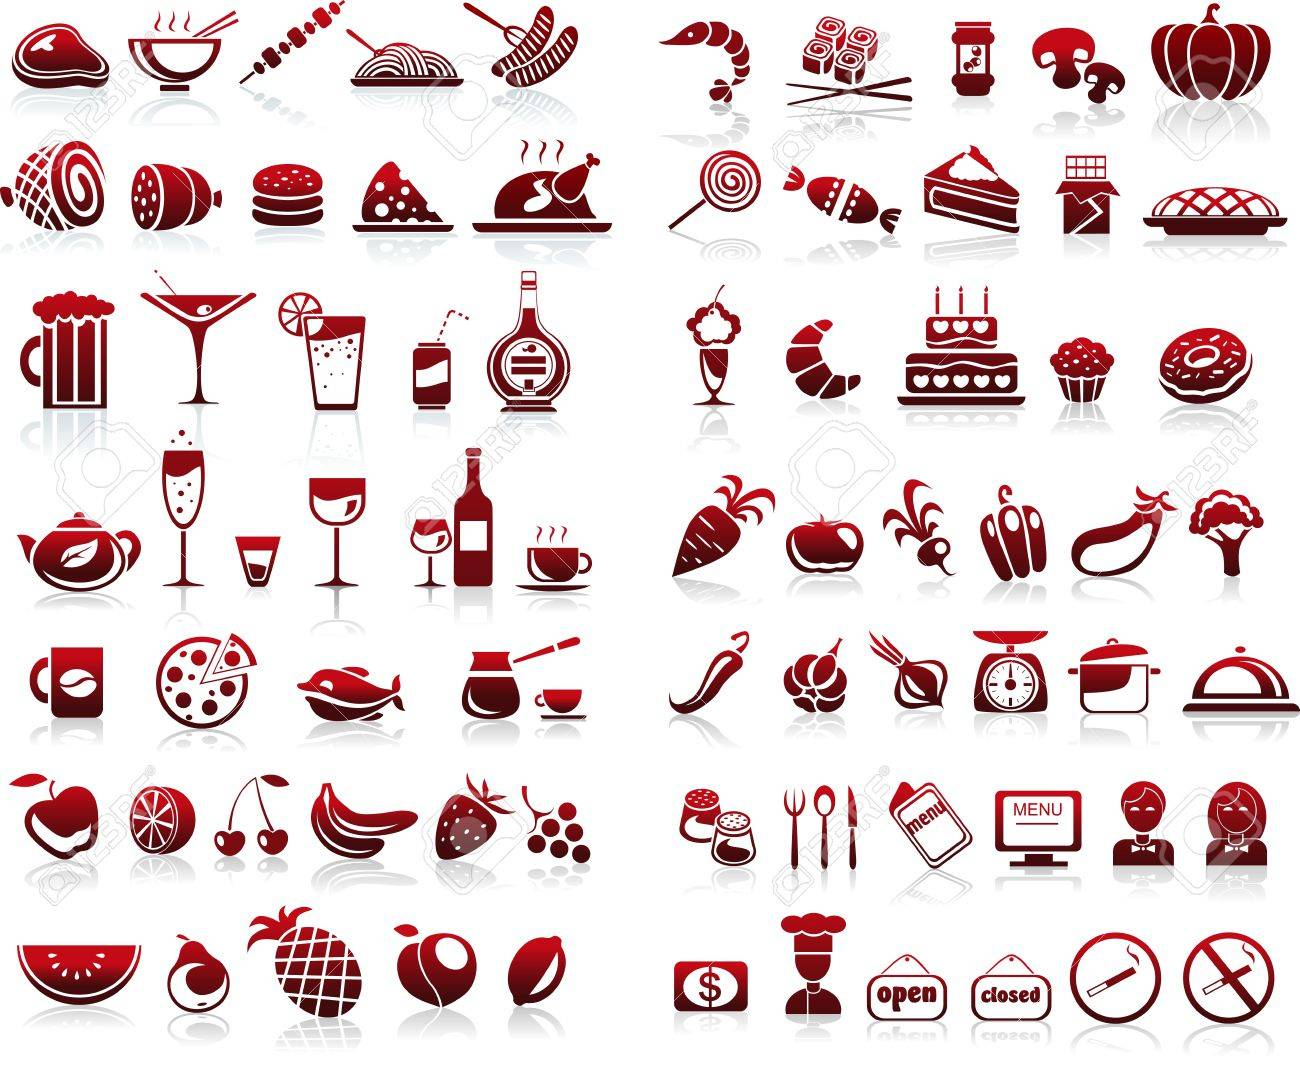 77 food and drink icons set for white background Stock Vector - 20038086